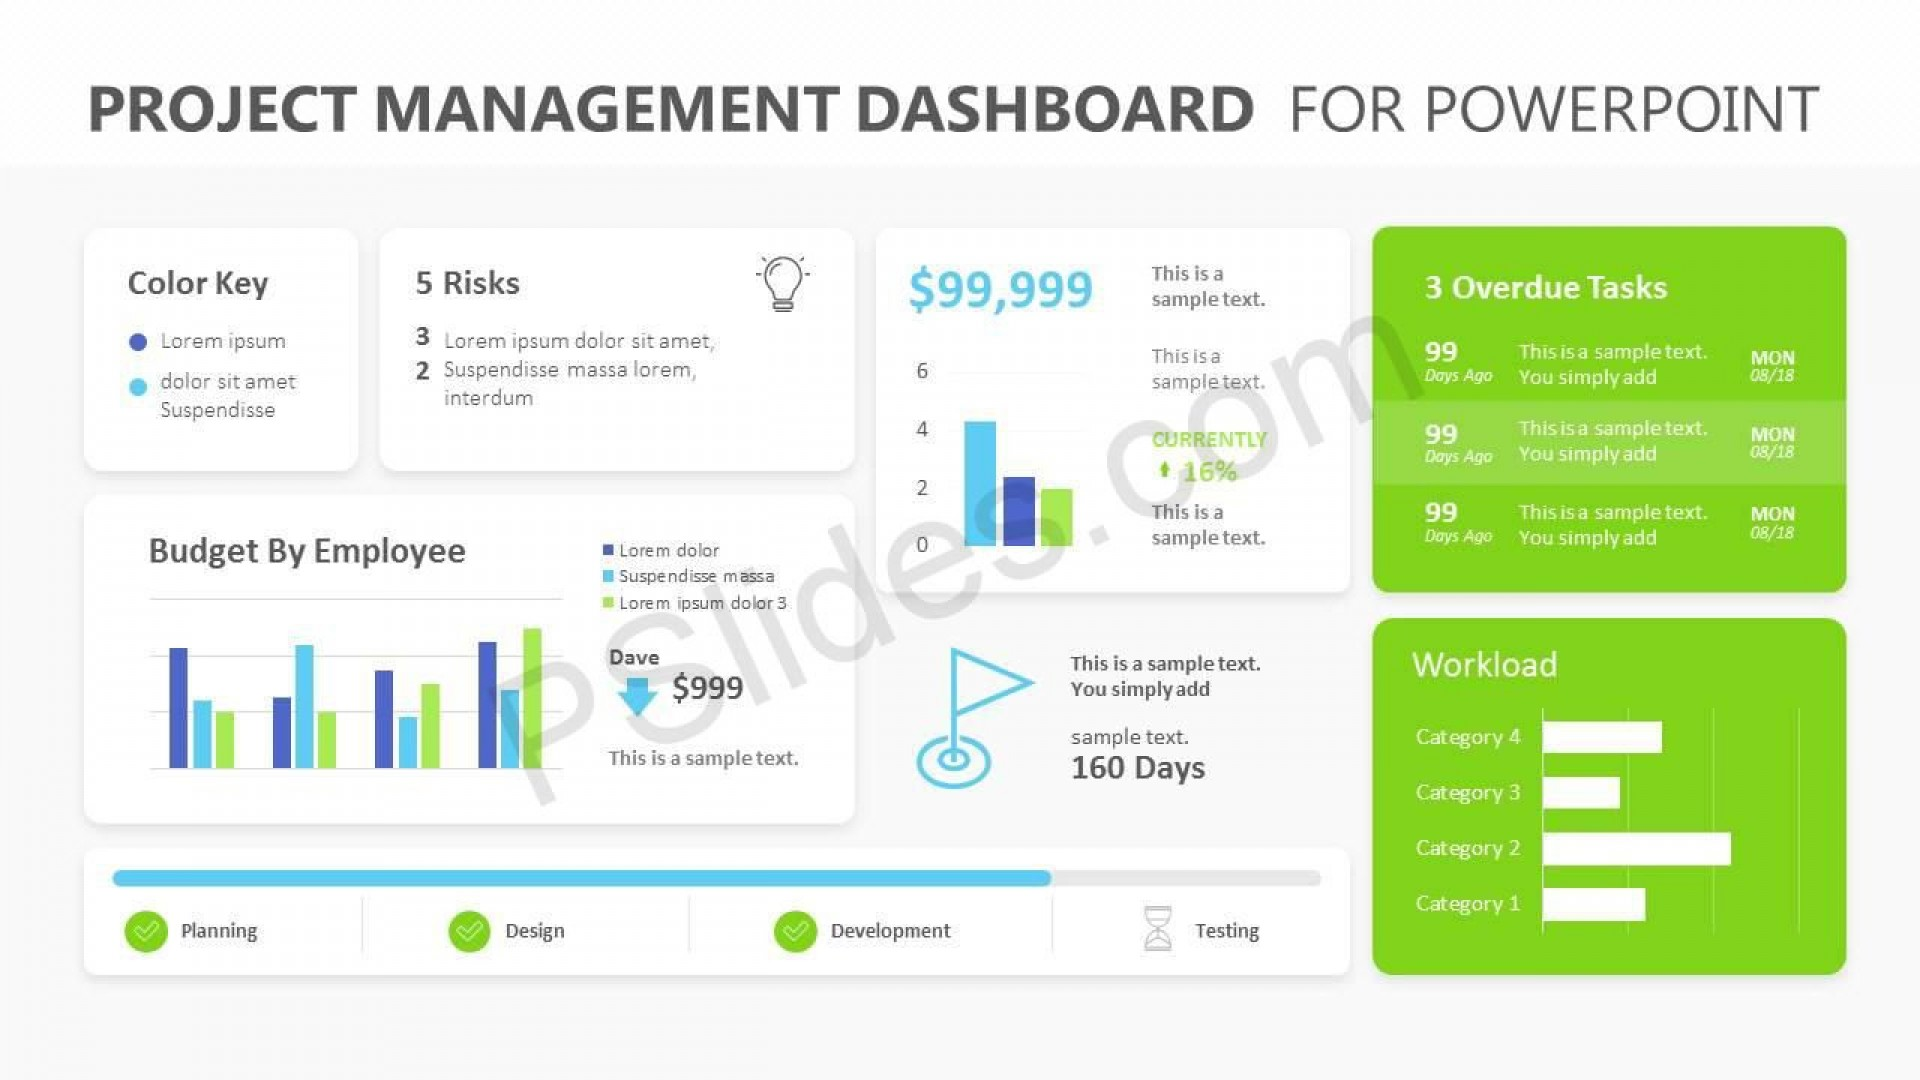 008 Stirring Project Management Dashboard Powerpoint Template Free Download High Definition 1920